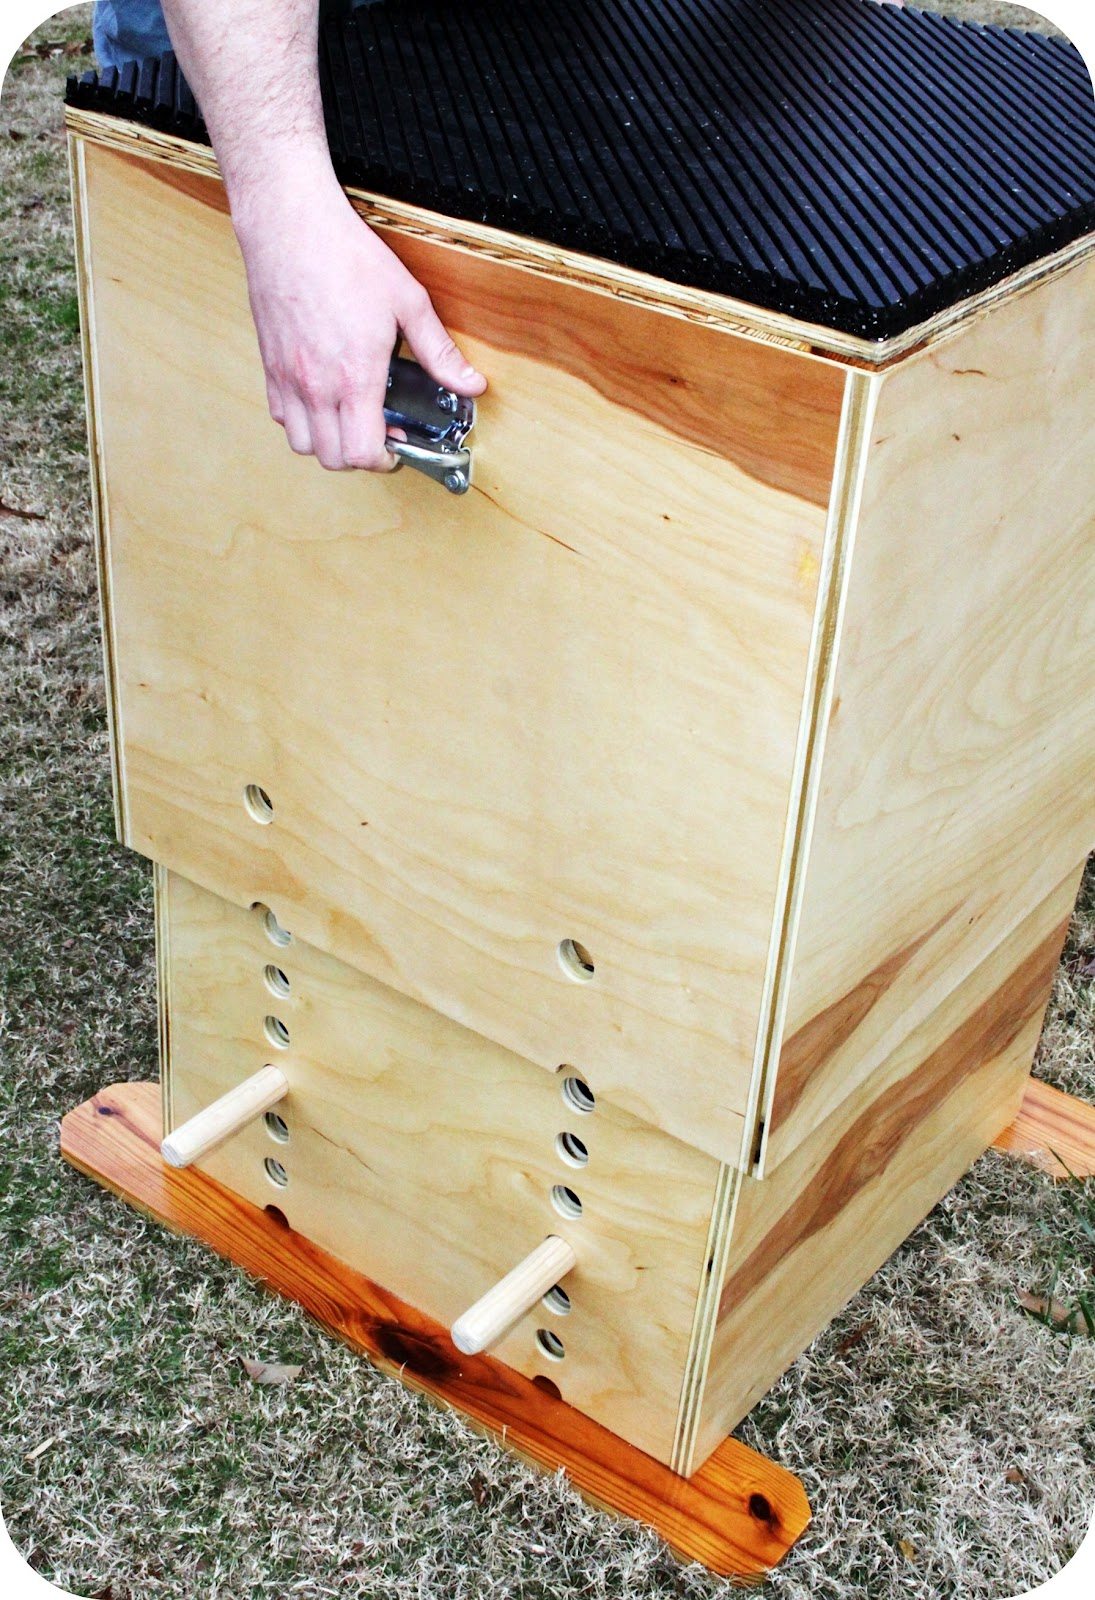 Trendytoolbox adjustable wooden plyo box